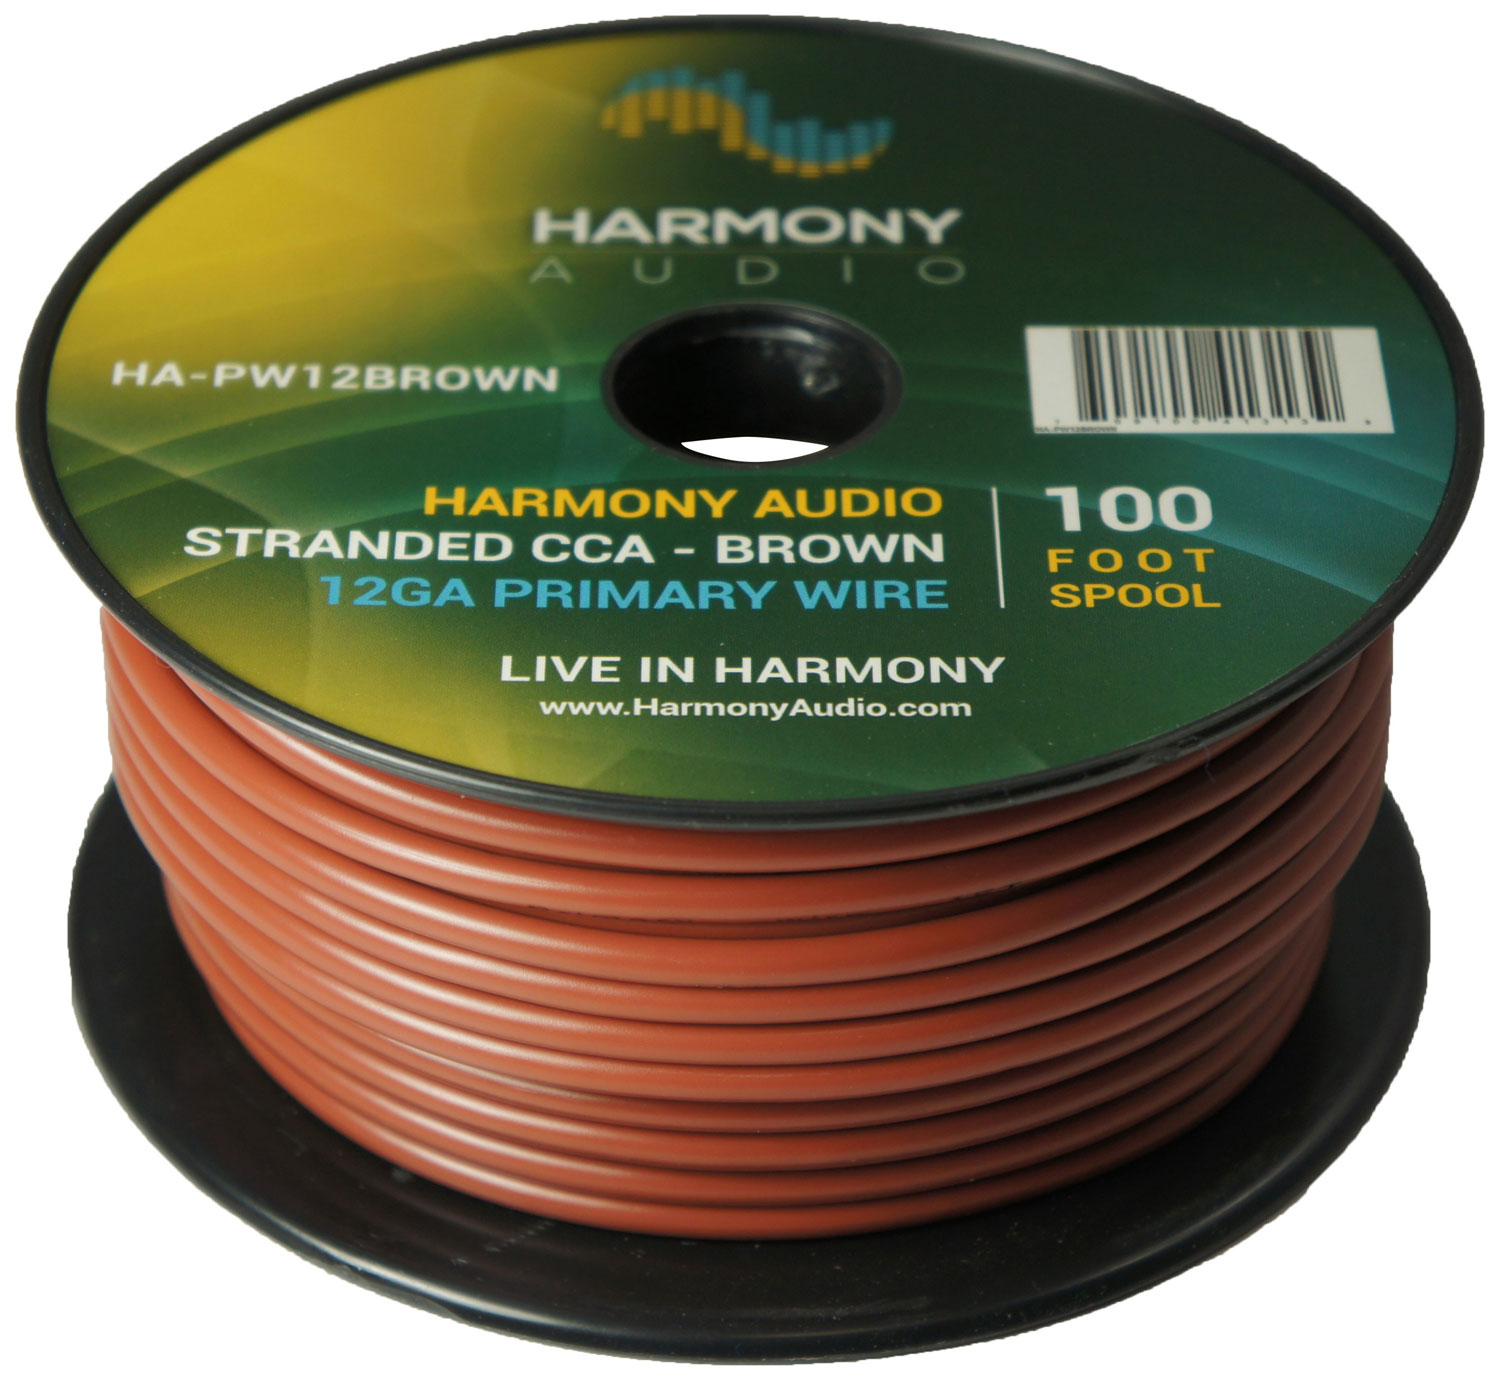 Harmony Audio HA-PW12BROWN Primary Single Conductor 12 Gauge Brown Power or Ground Wire Roll 100 Feet Cable for Car Audio / Trailer / Model Train / Remote